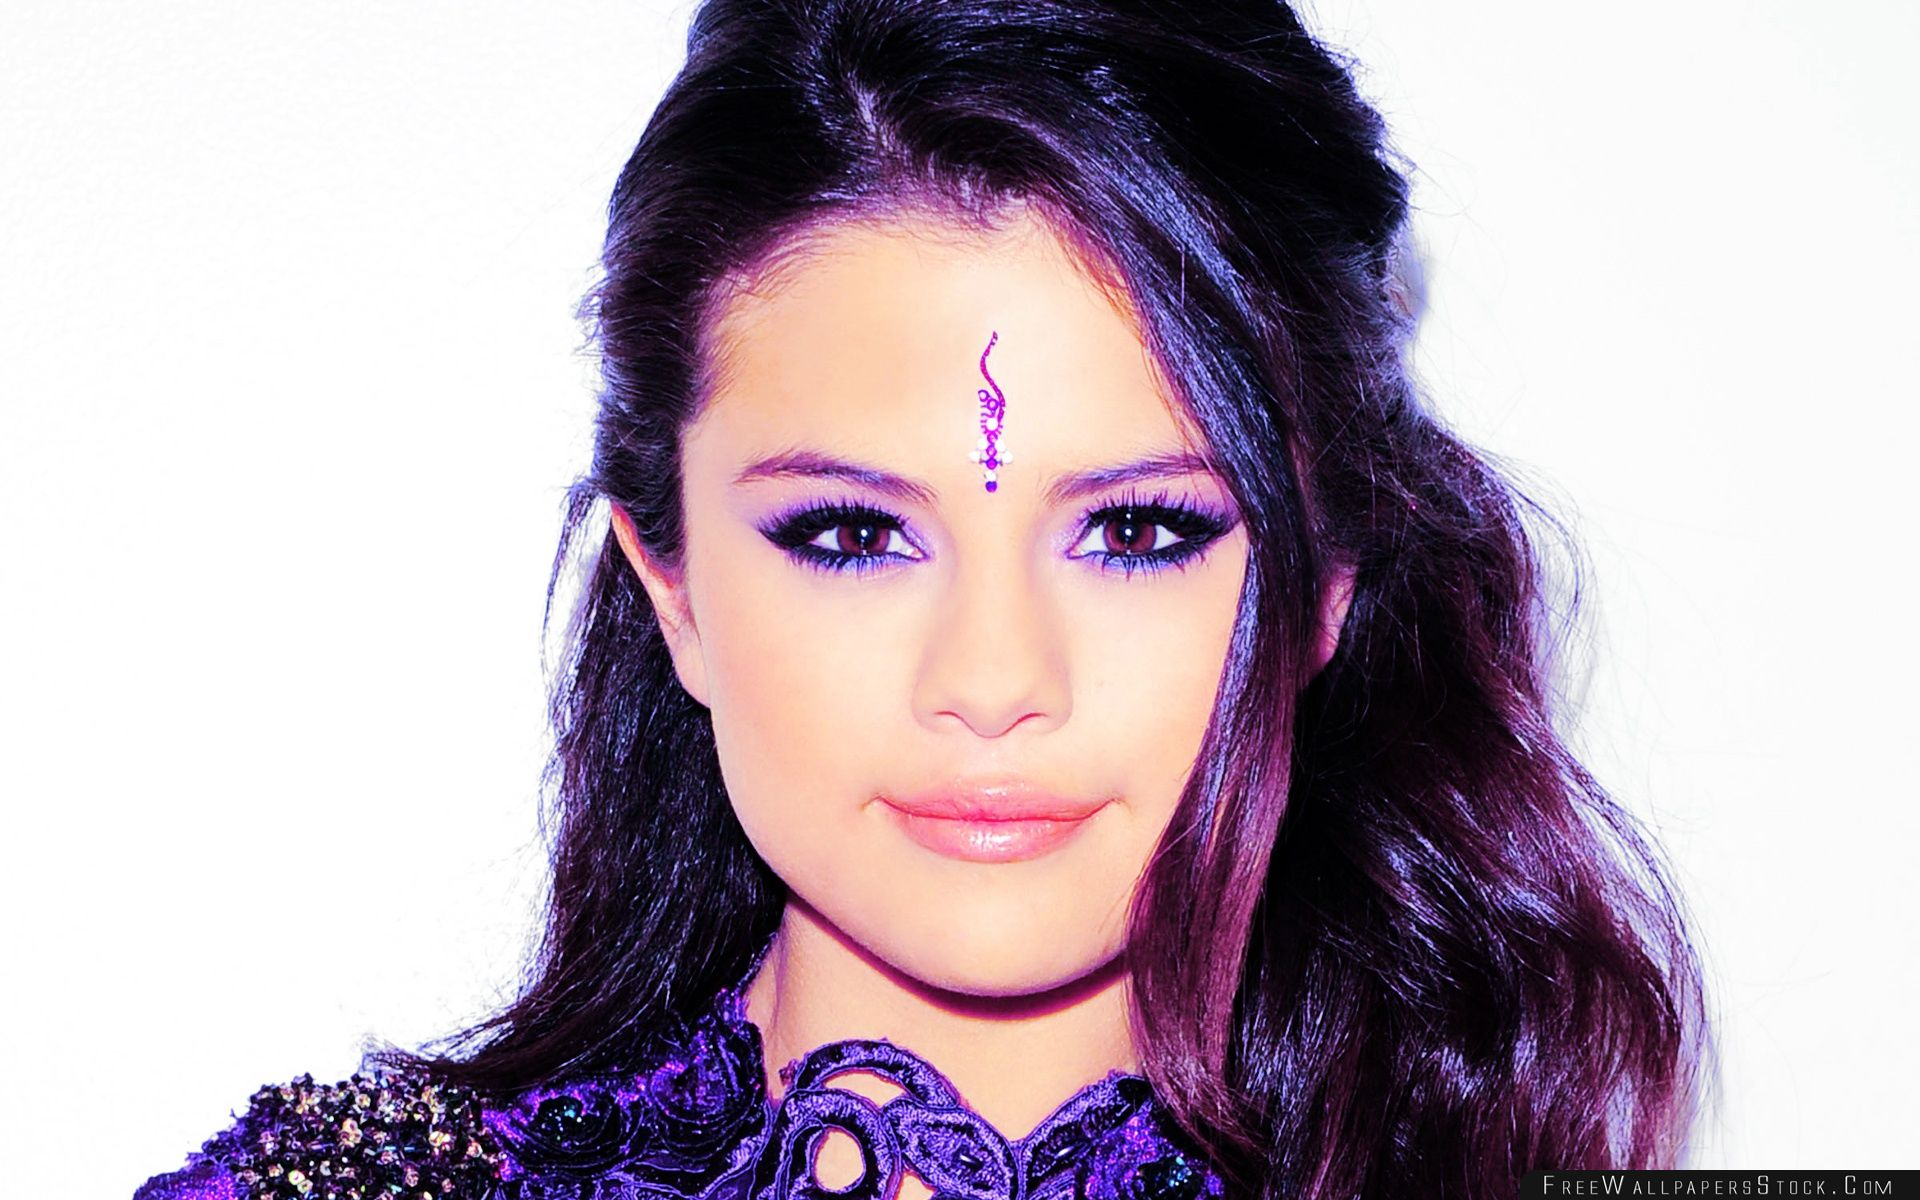 Download Free Wallpaper Selena Gomez Come And Get   Background